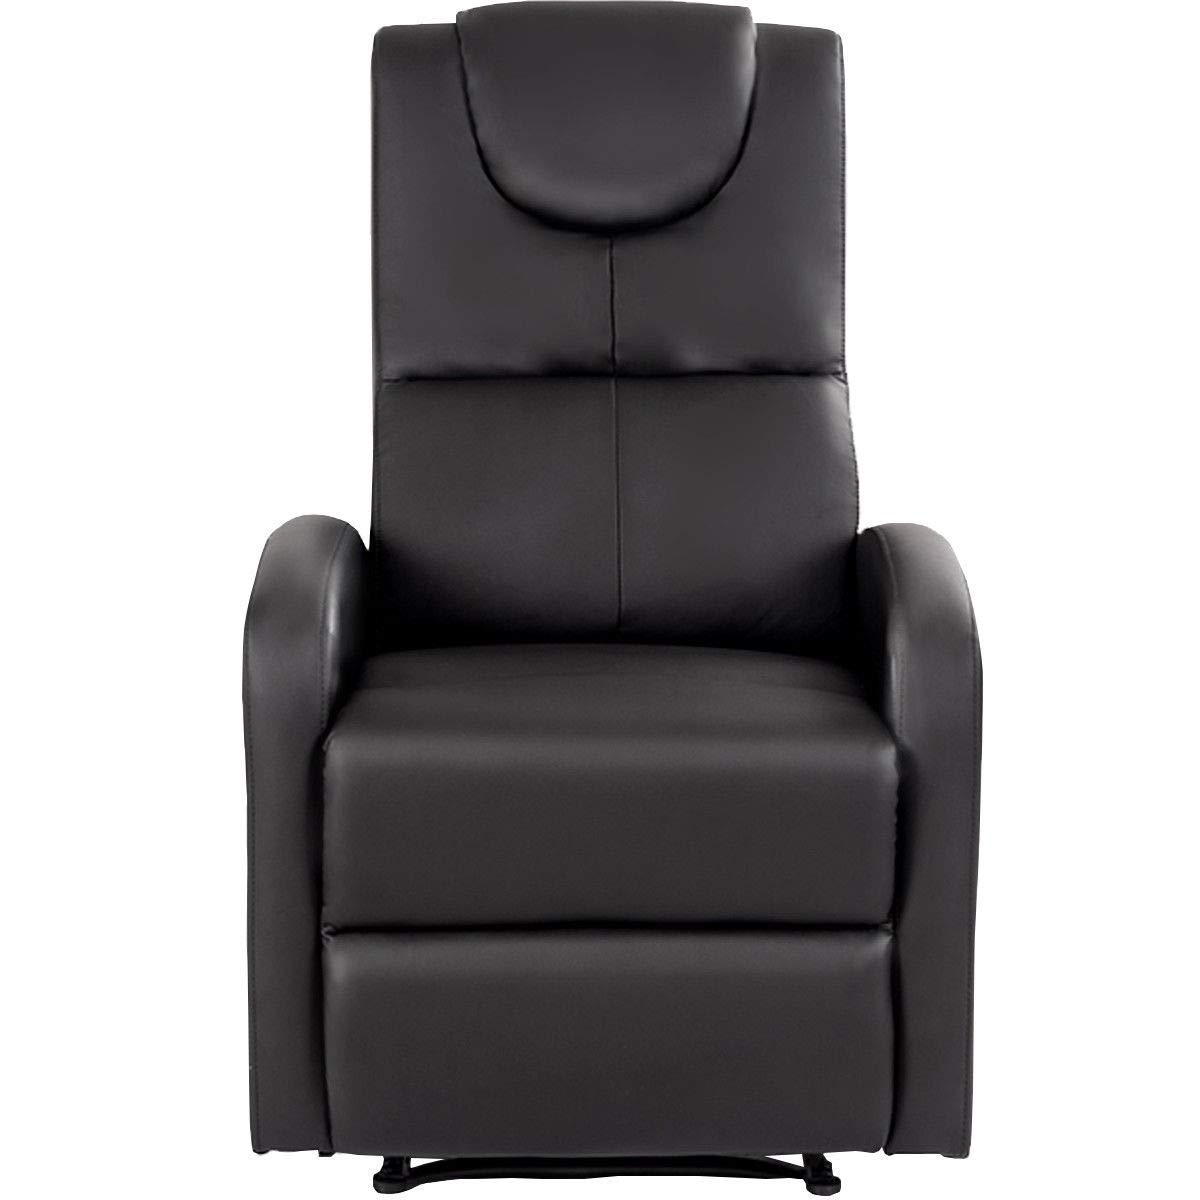 GHP 330-Lbs Capacity Black Waterproof Leather Push-Back Recliner Chair with Footrest